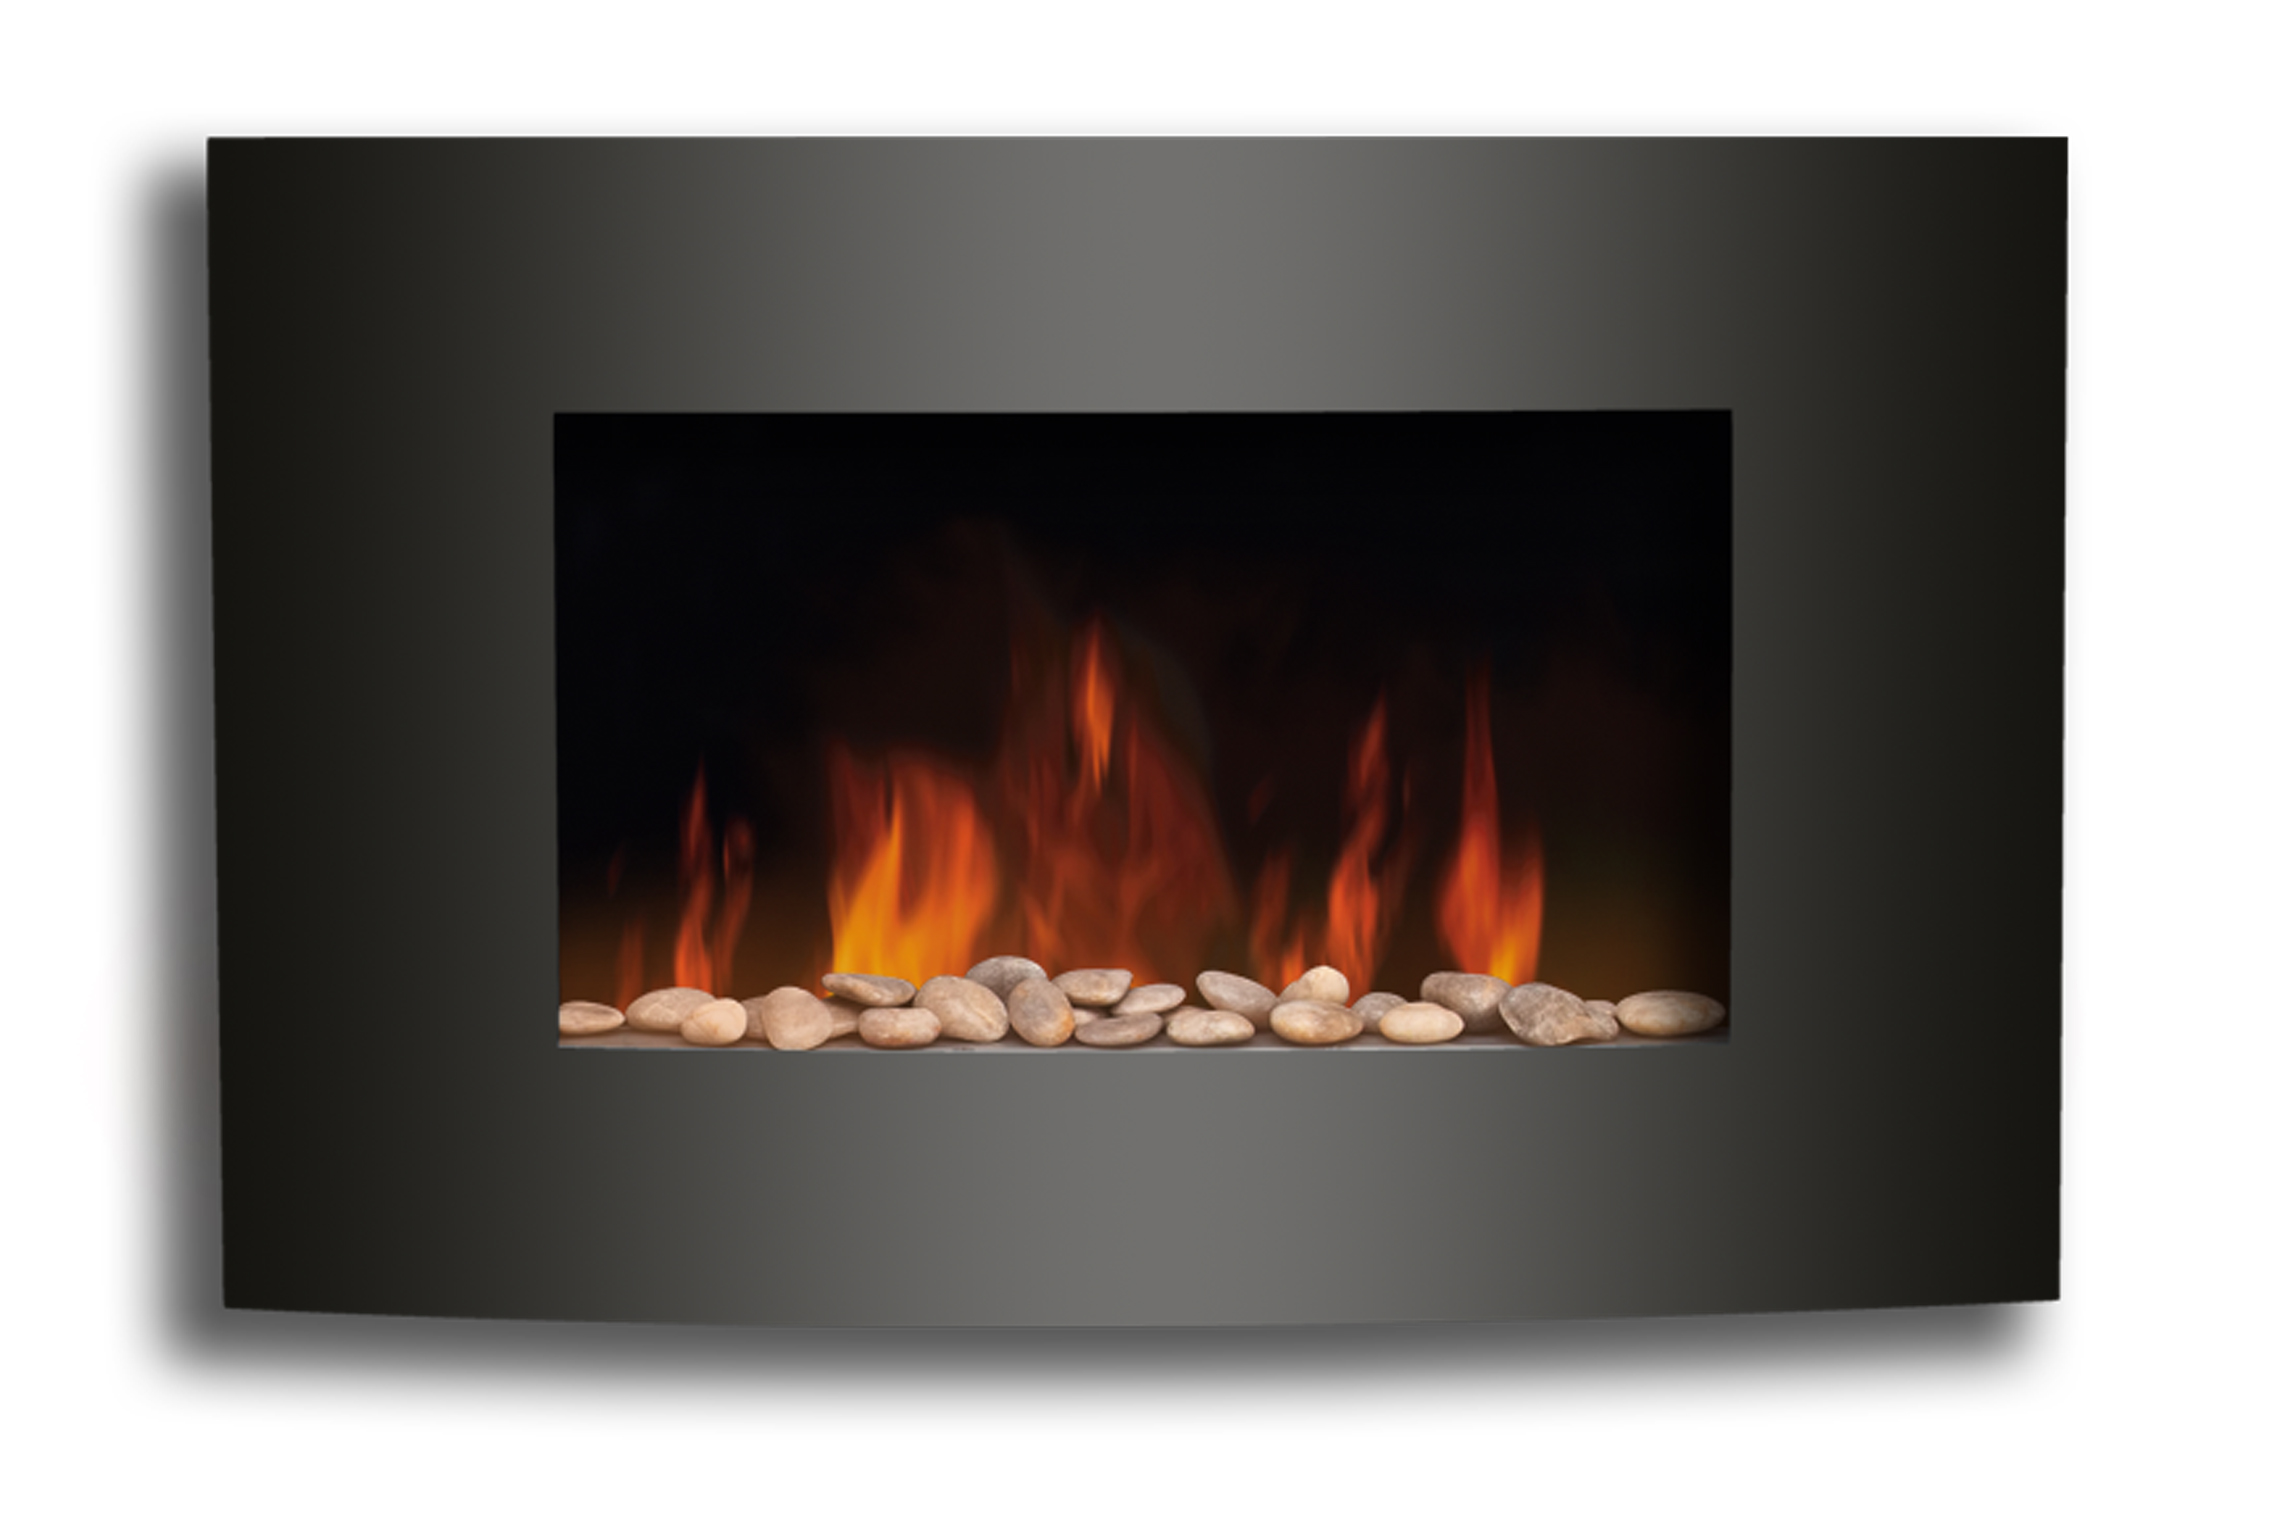 Amazing Flame Effect Electric Fires Part - 1: Sentinel New Wall Mounted Electric Fire Fireplace Black Curved Glass Heater Flame  Effect